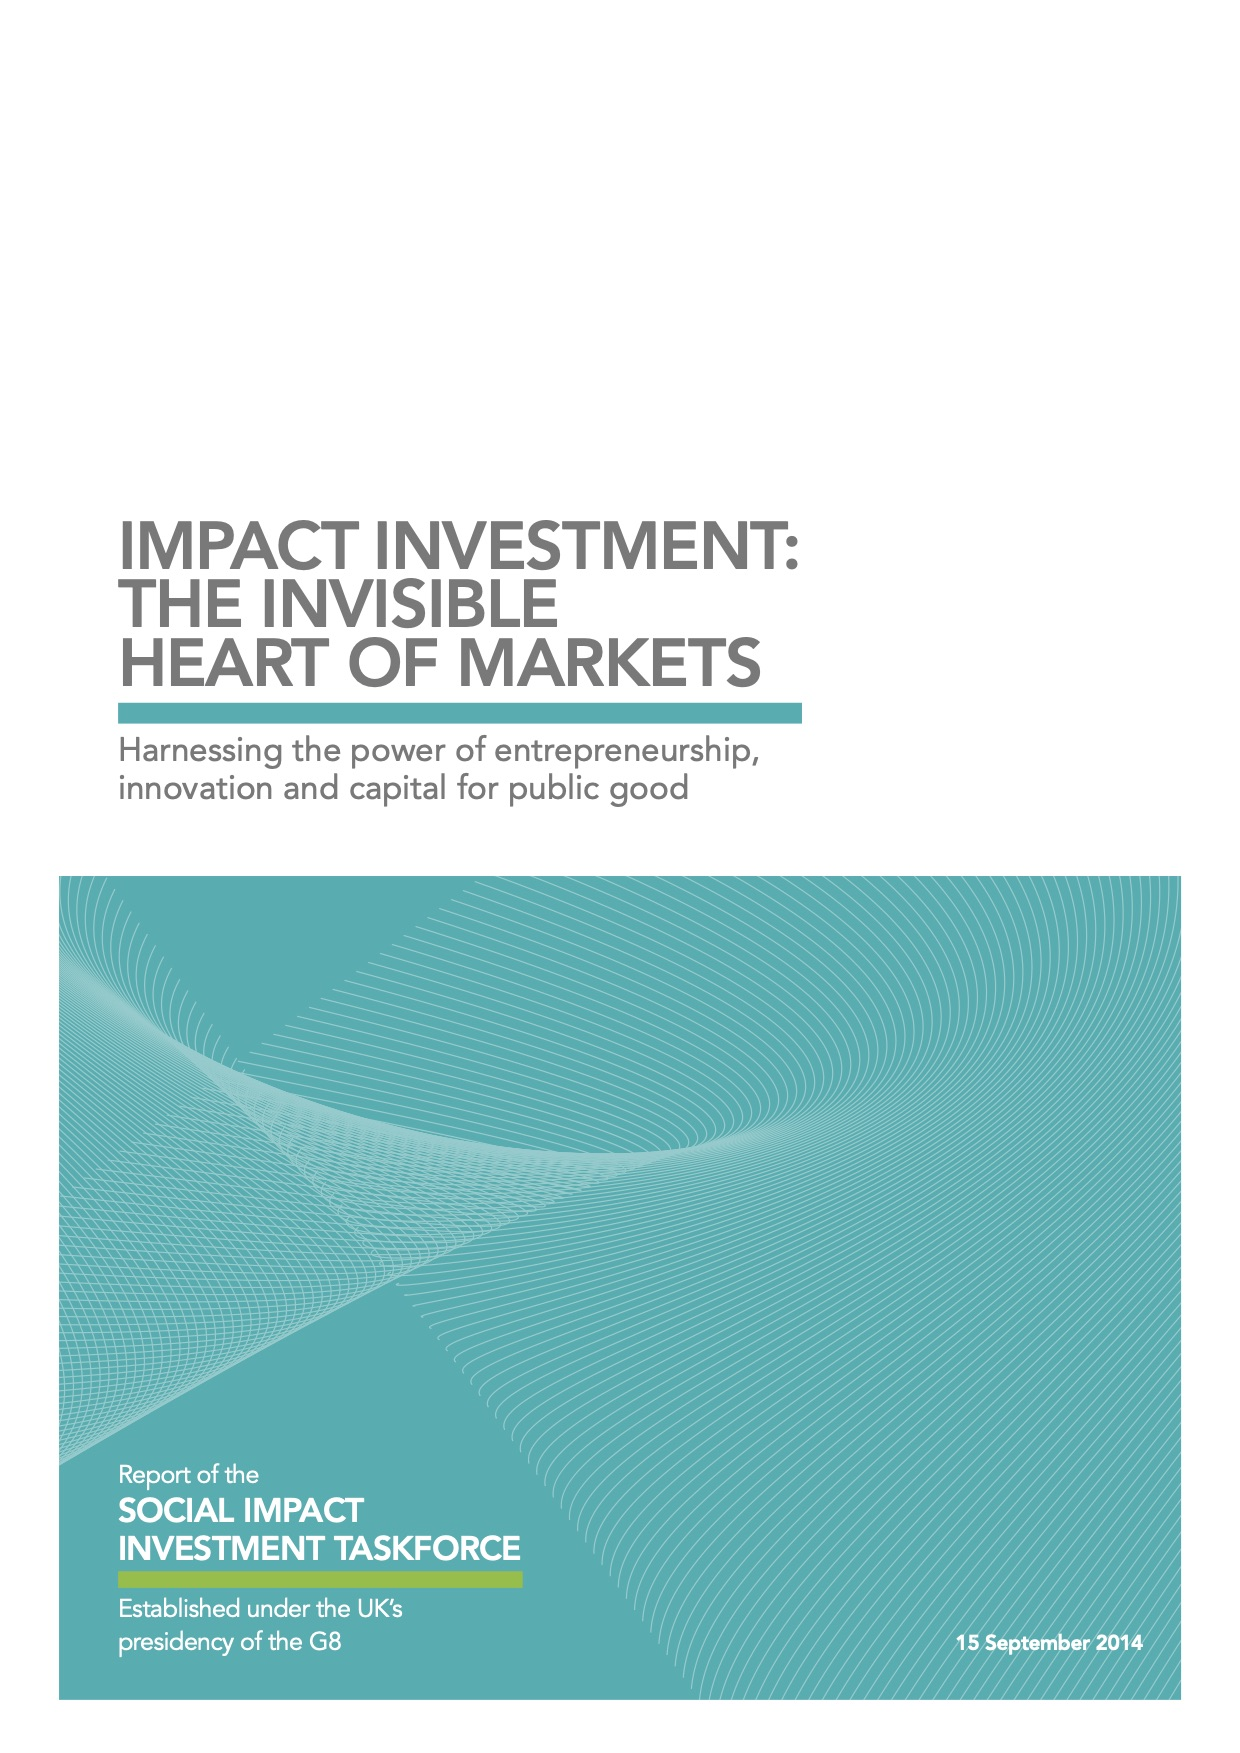 Impact Investment: The Invisible Heart of Markets - Harnessing the power of entrepreneurship, innovation and capital for public good